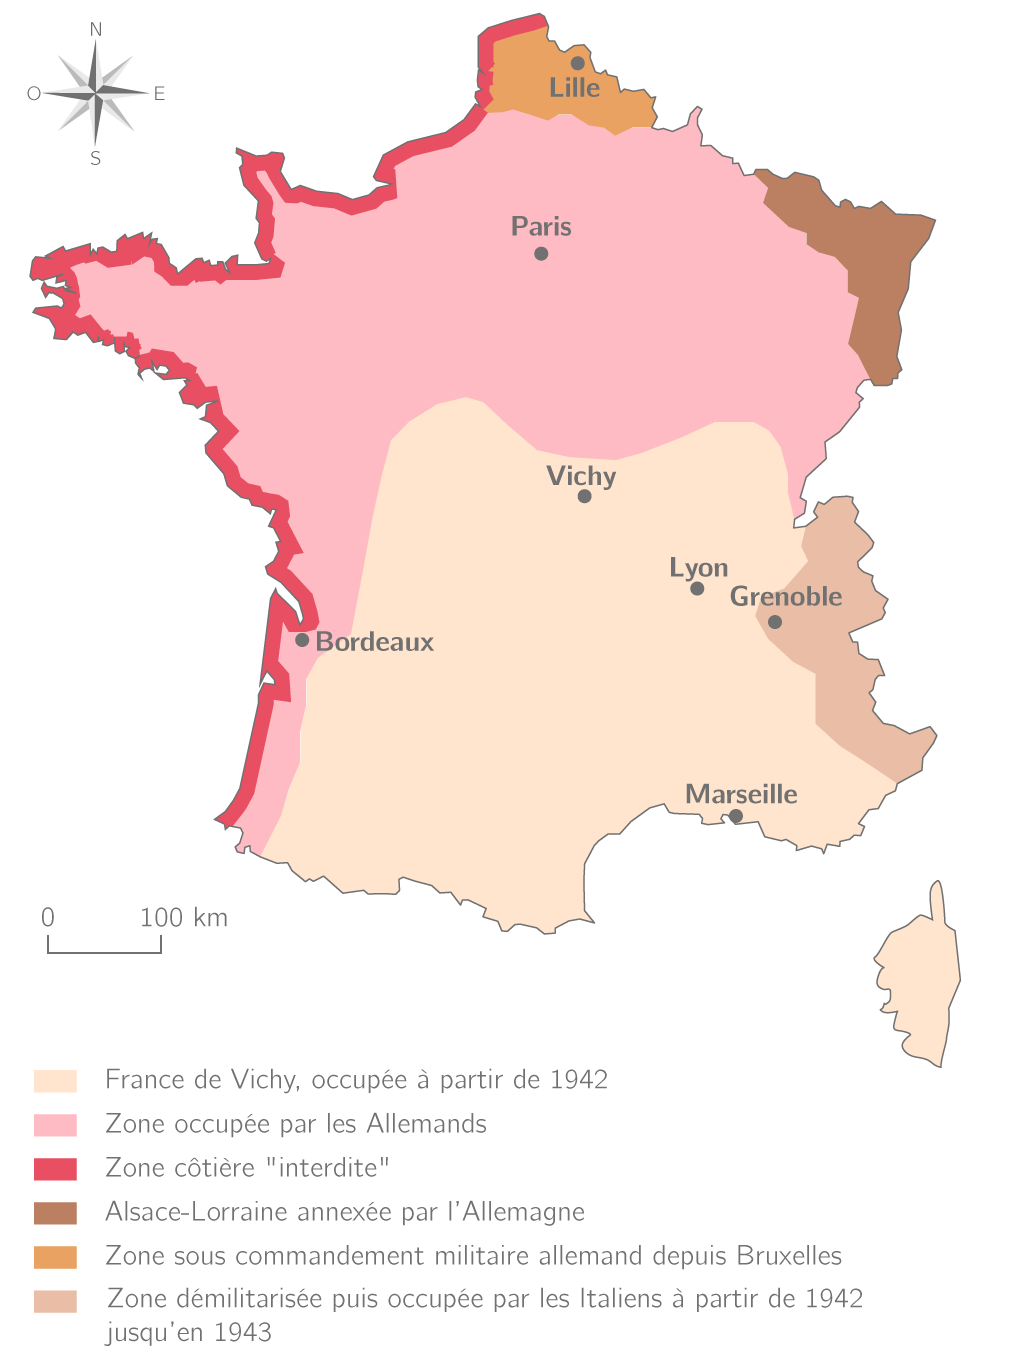 La France occupée